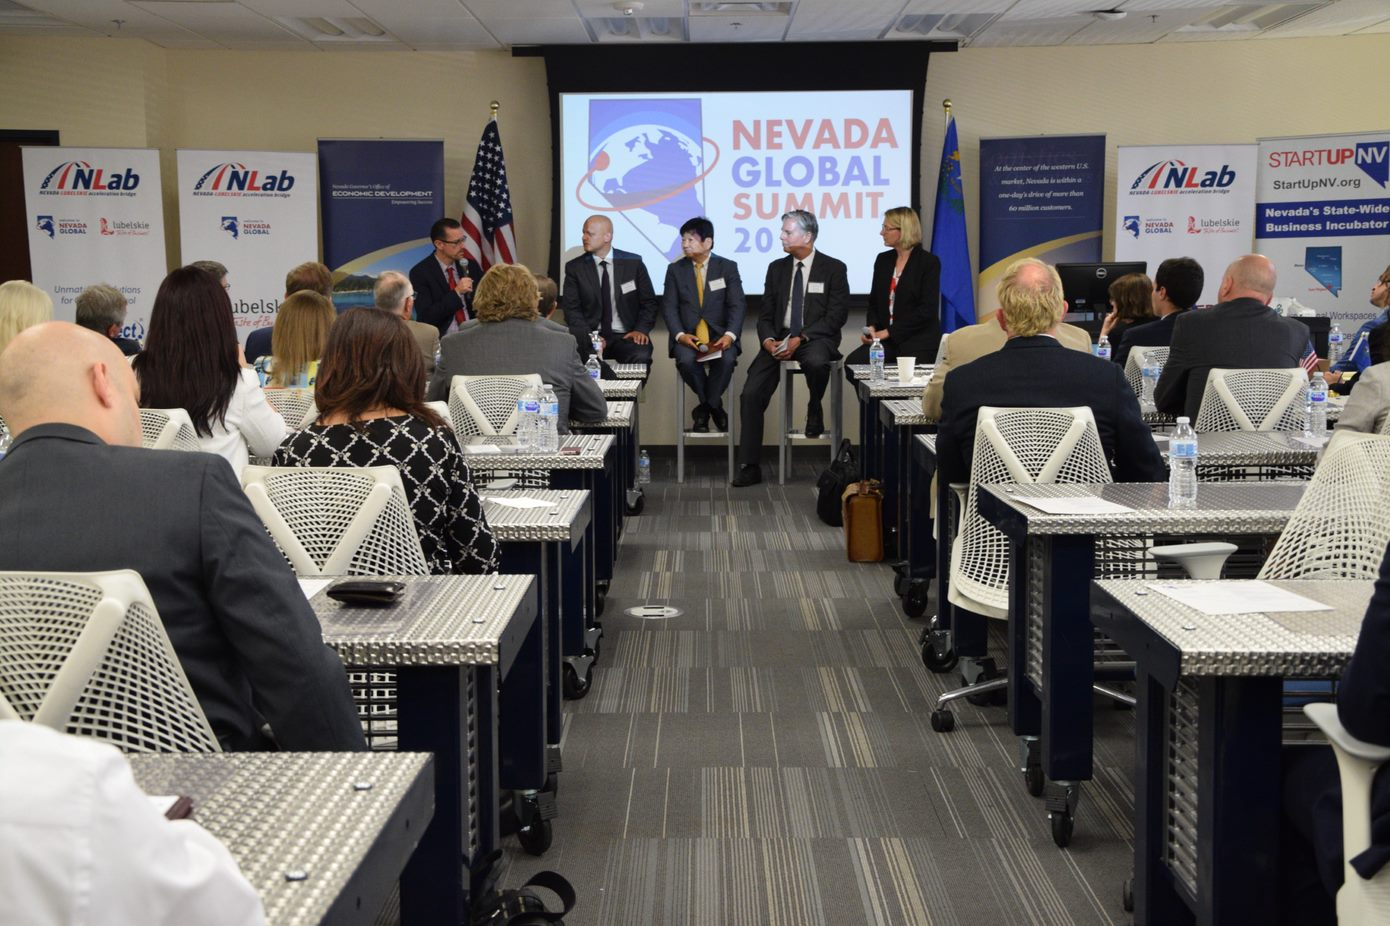 Polish Business and Innovation Week in Nevada. People sitting on the desks like in the school, in front of them are sitting five people on the tall bar chairs, one of them is the host.